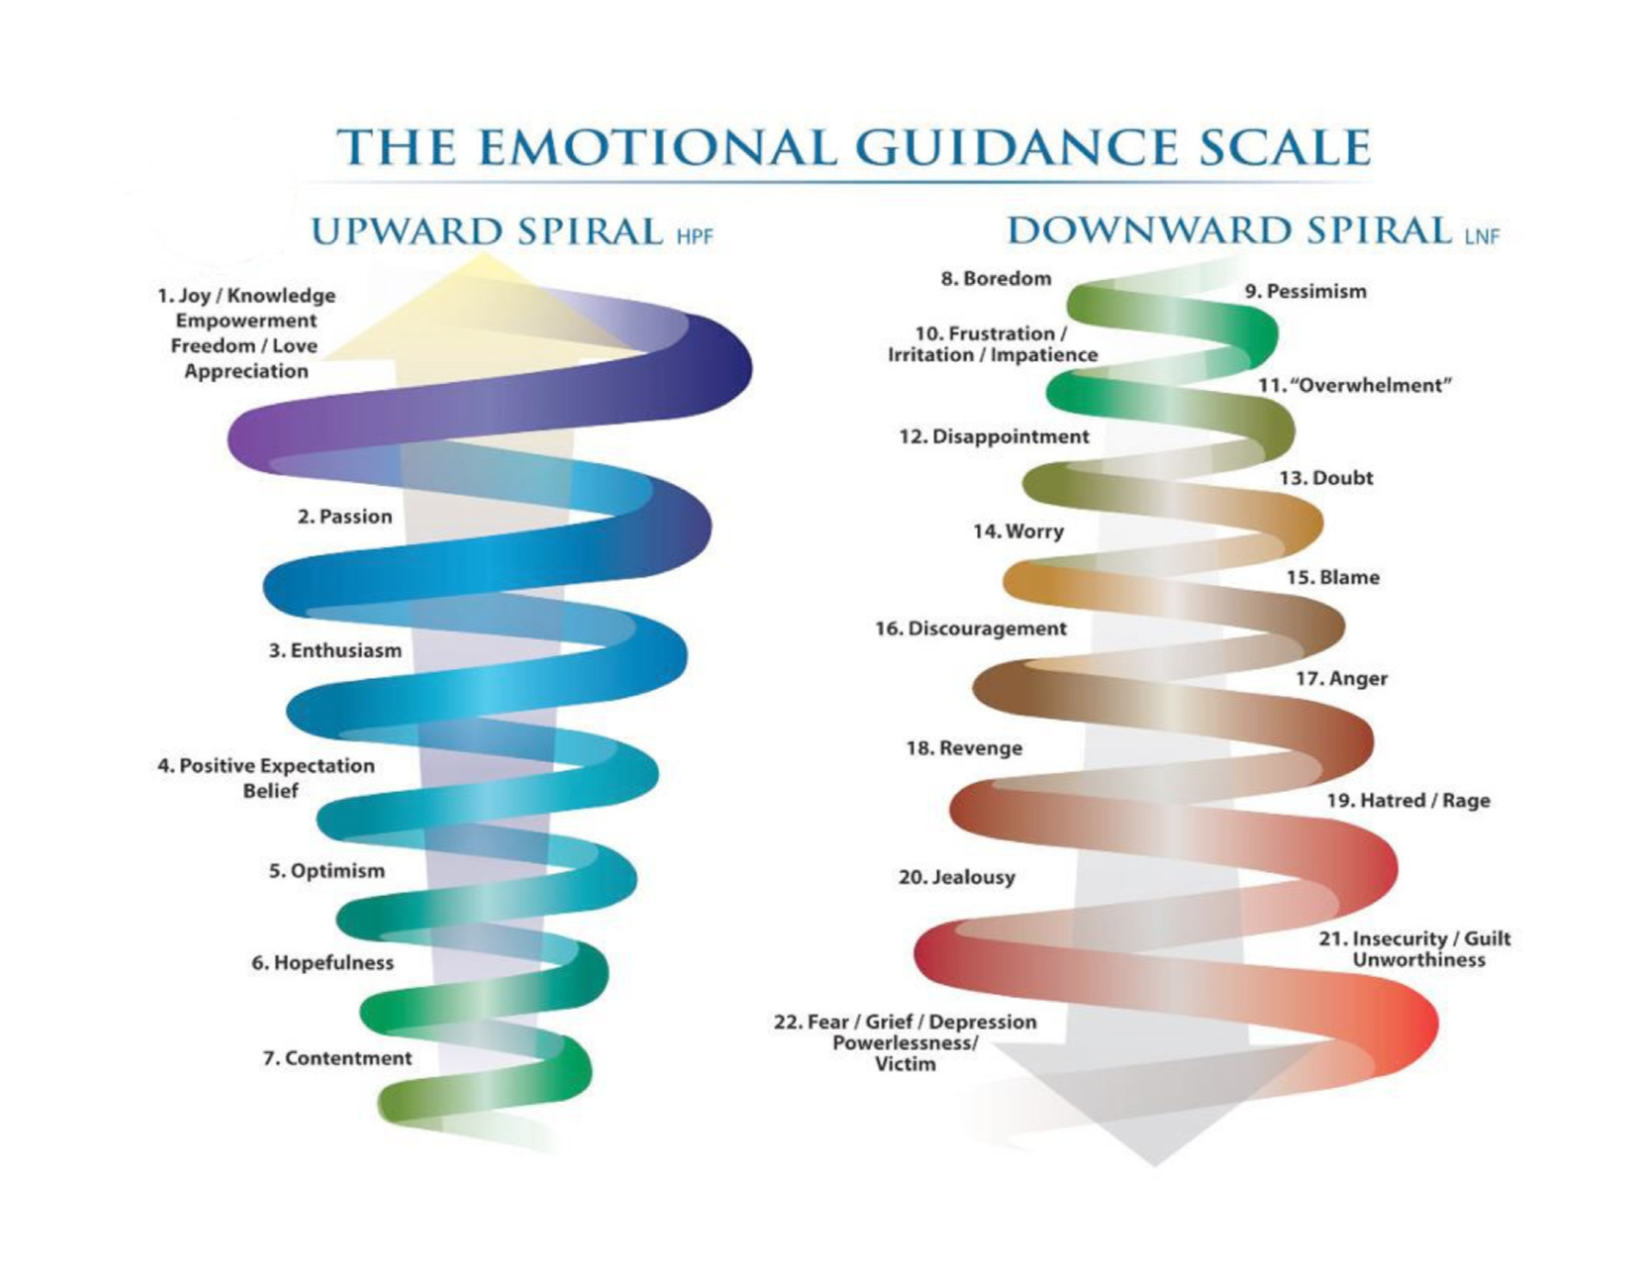 emotional-guidance-scale-without-logo-png.png